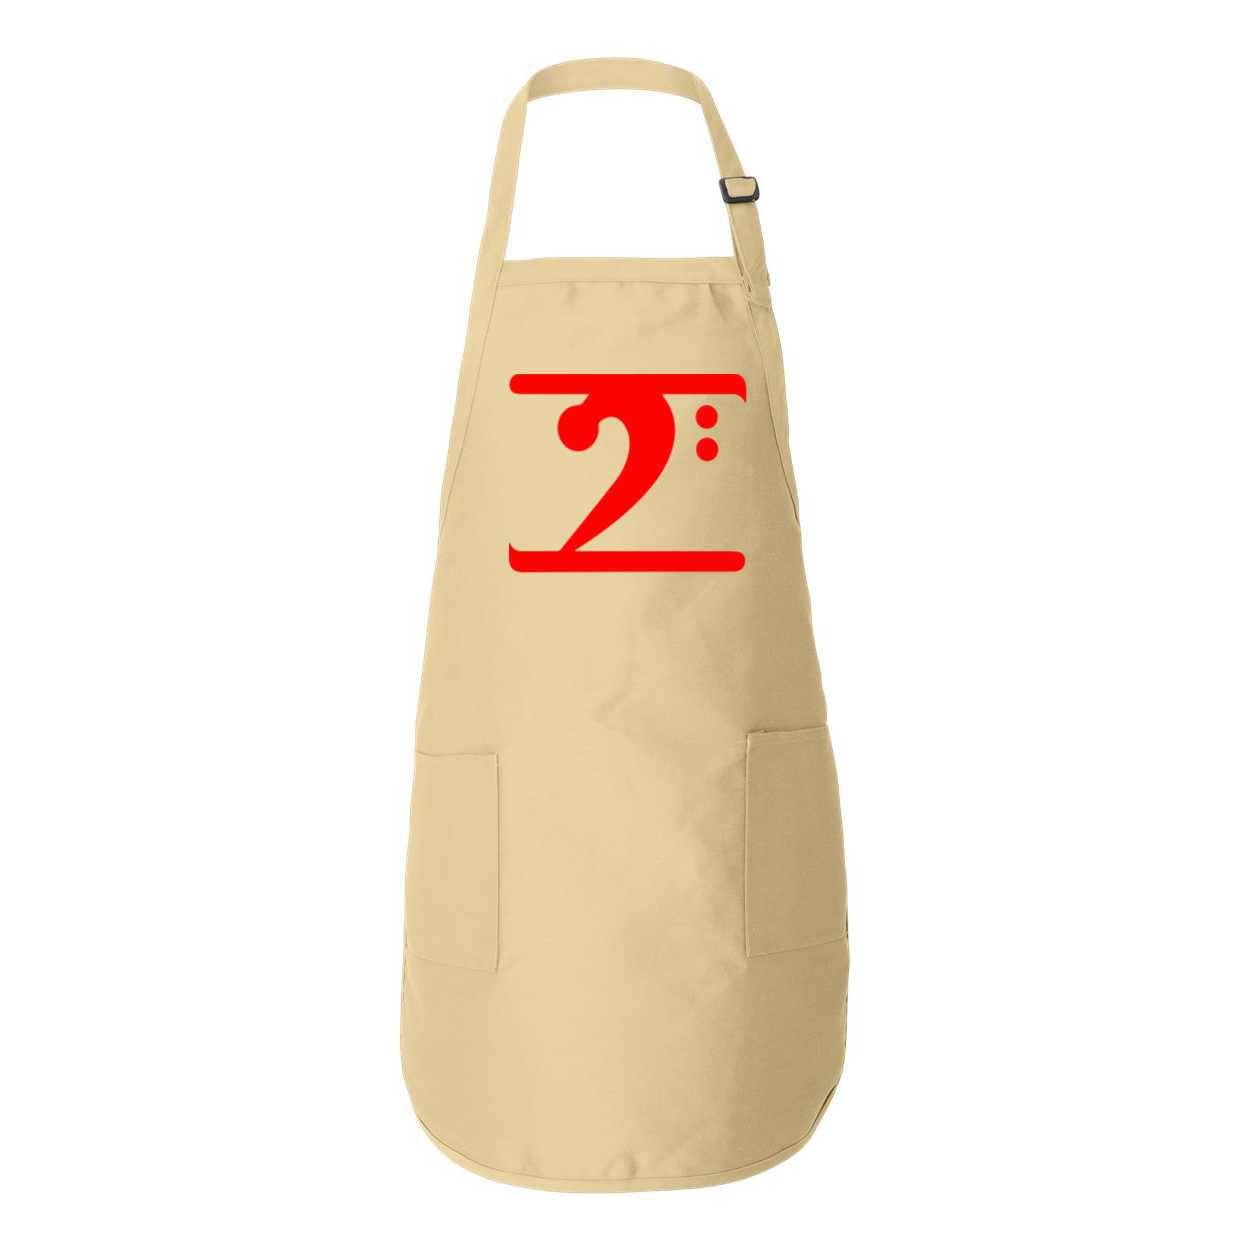 RED LOGO Full-Length Apron with Pockets - Lathon Bass Wear